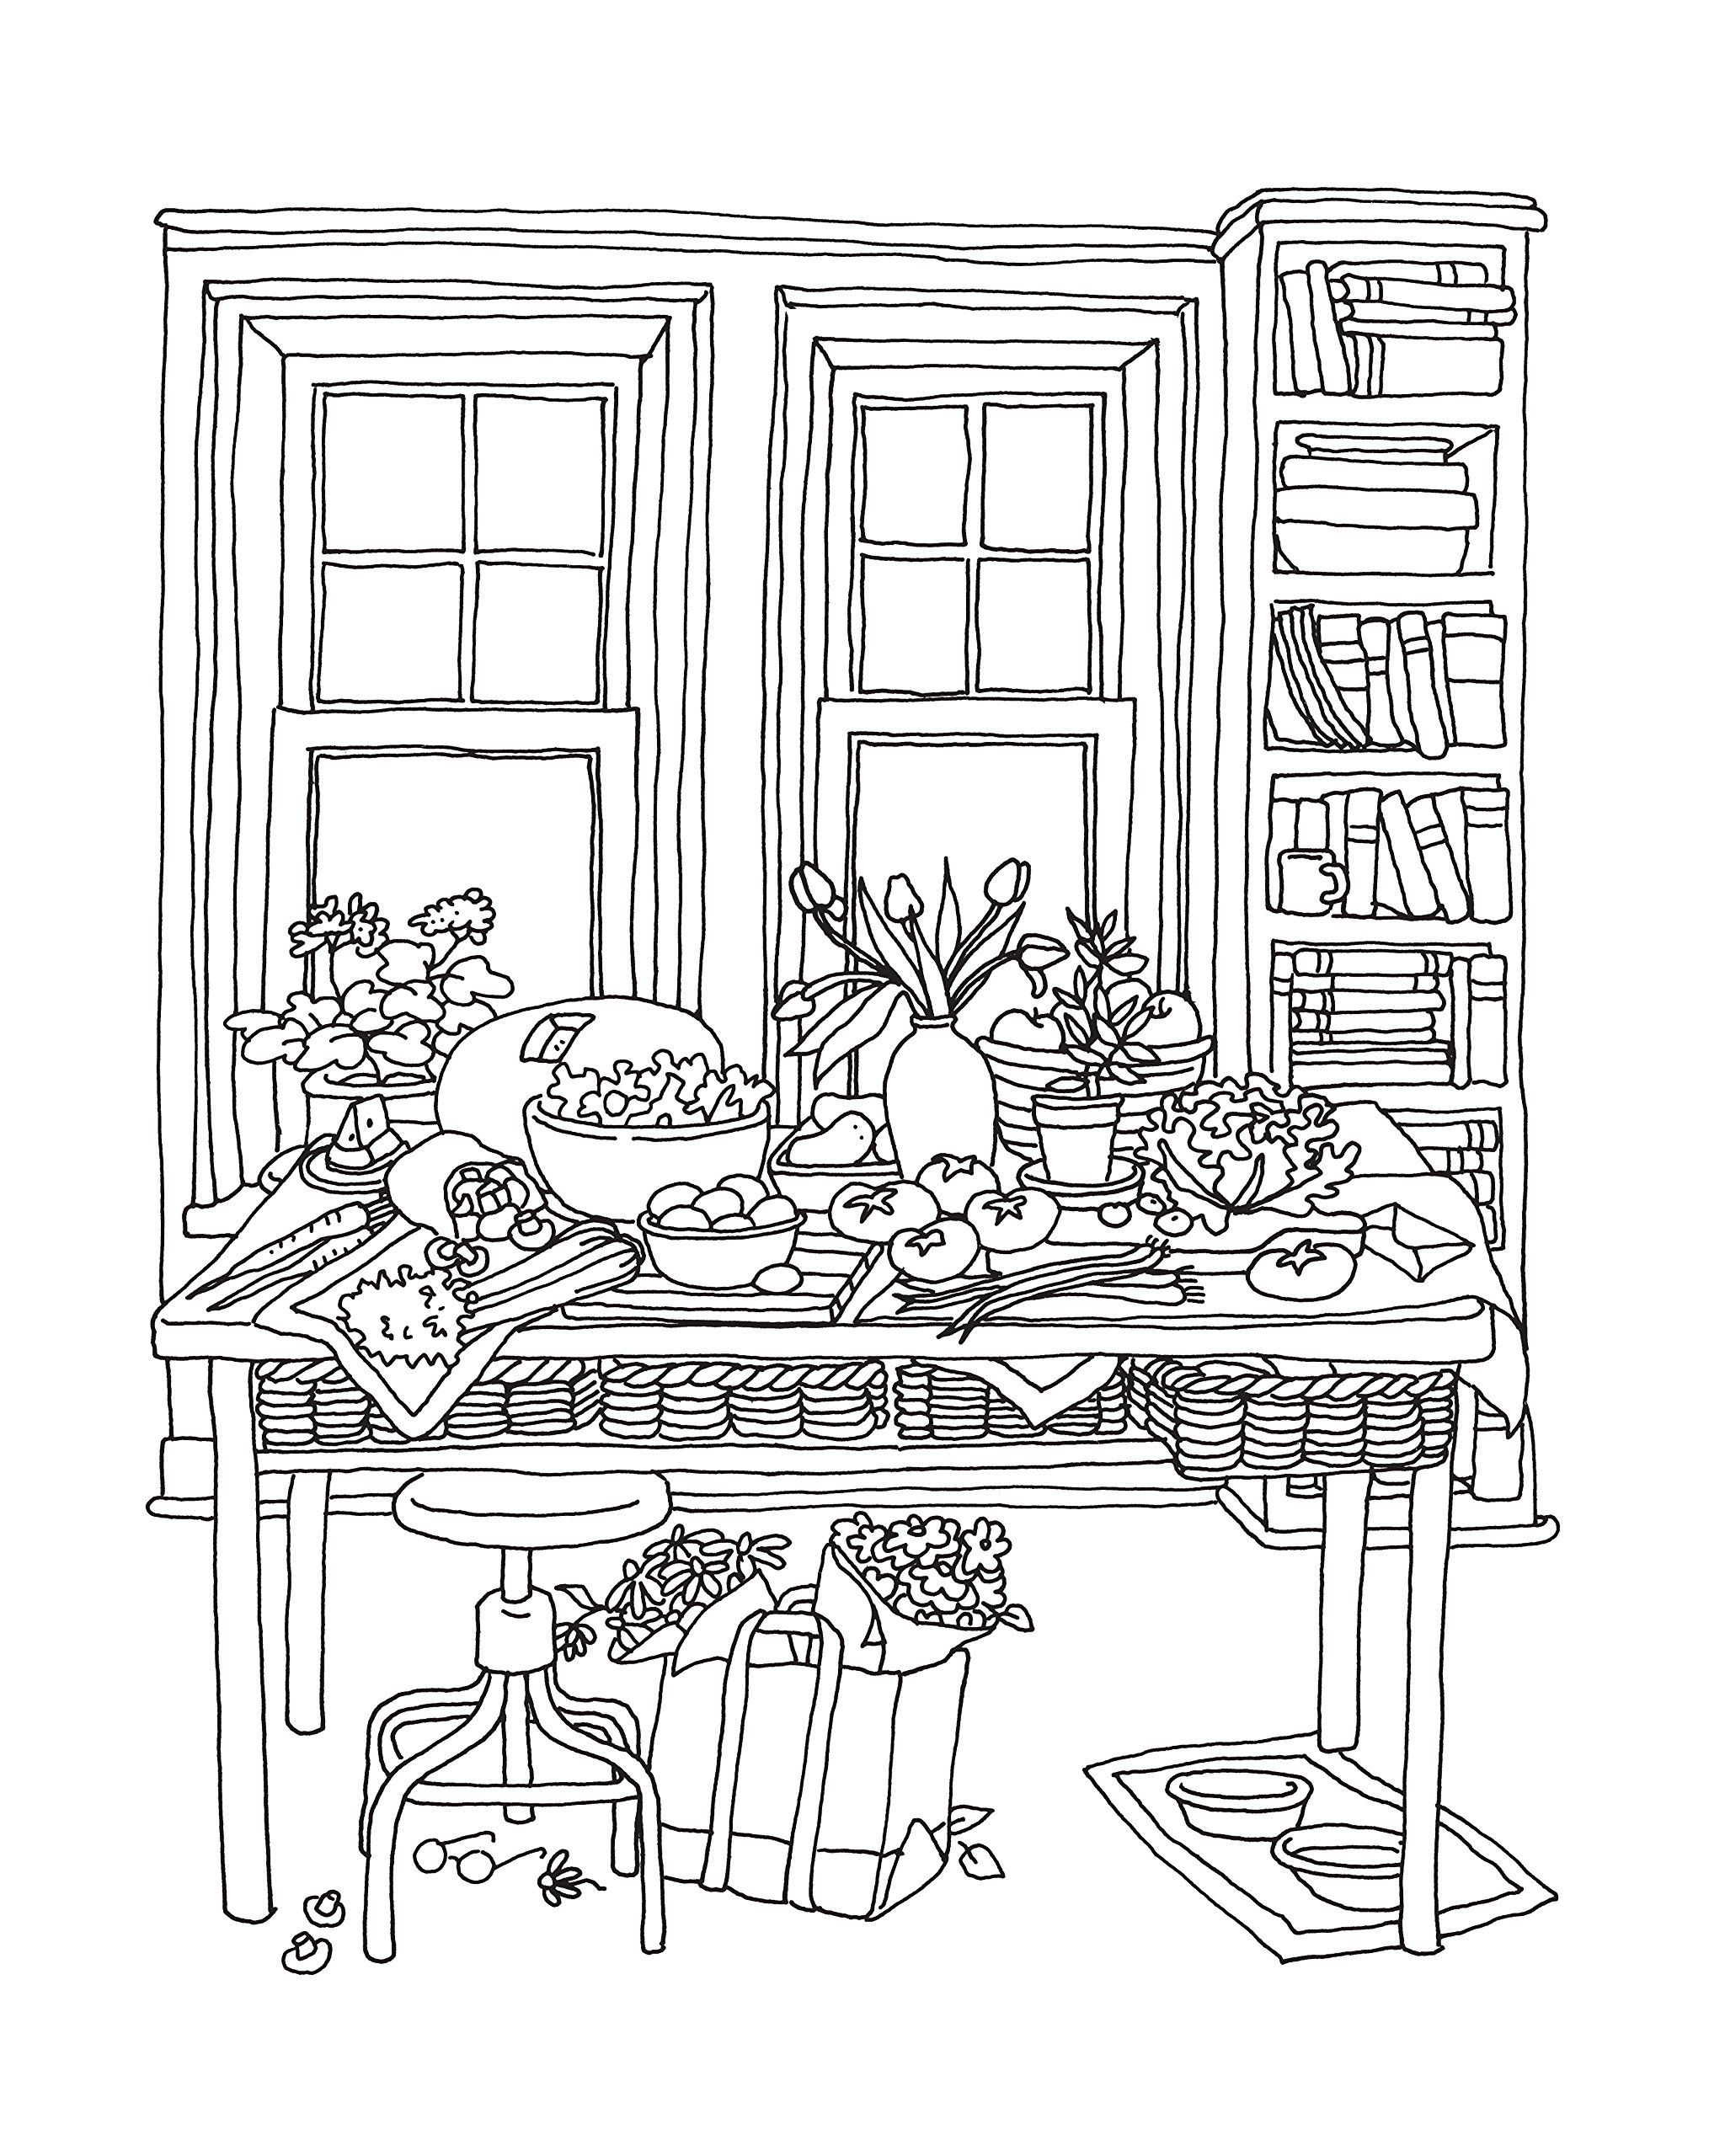 Color Me Cluttered A Coloring Book to Transform Everyday Chaos into